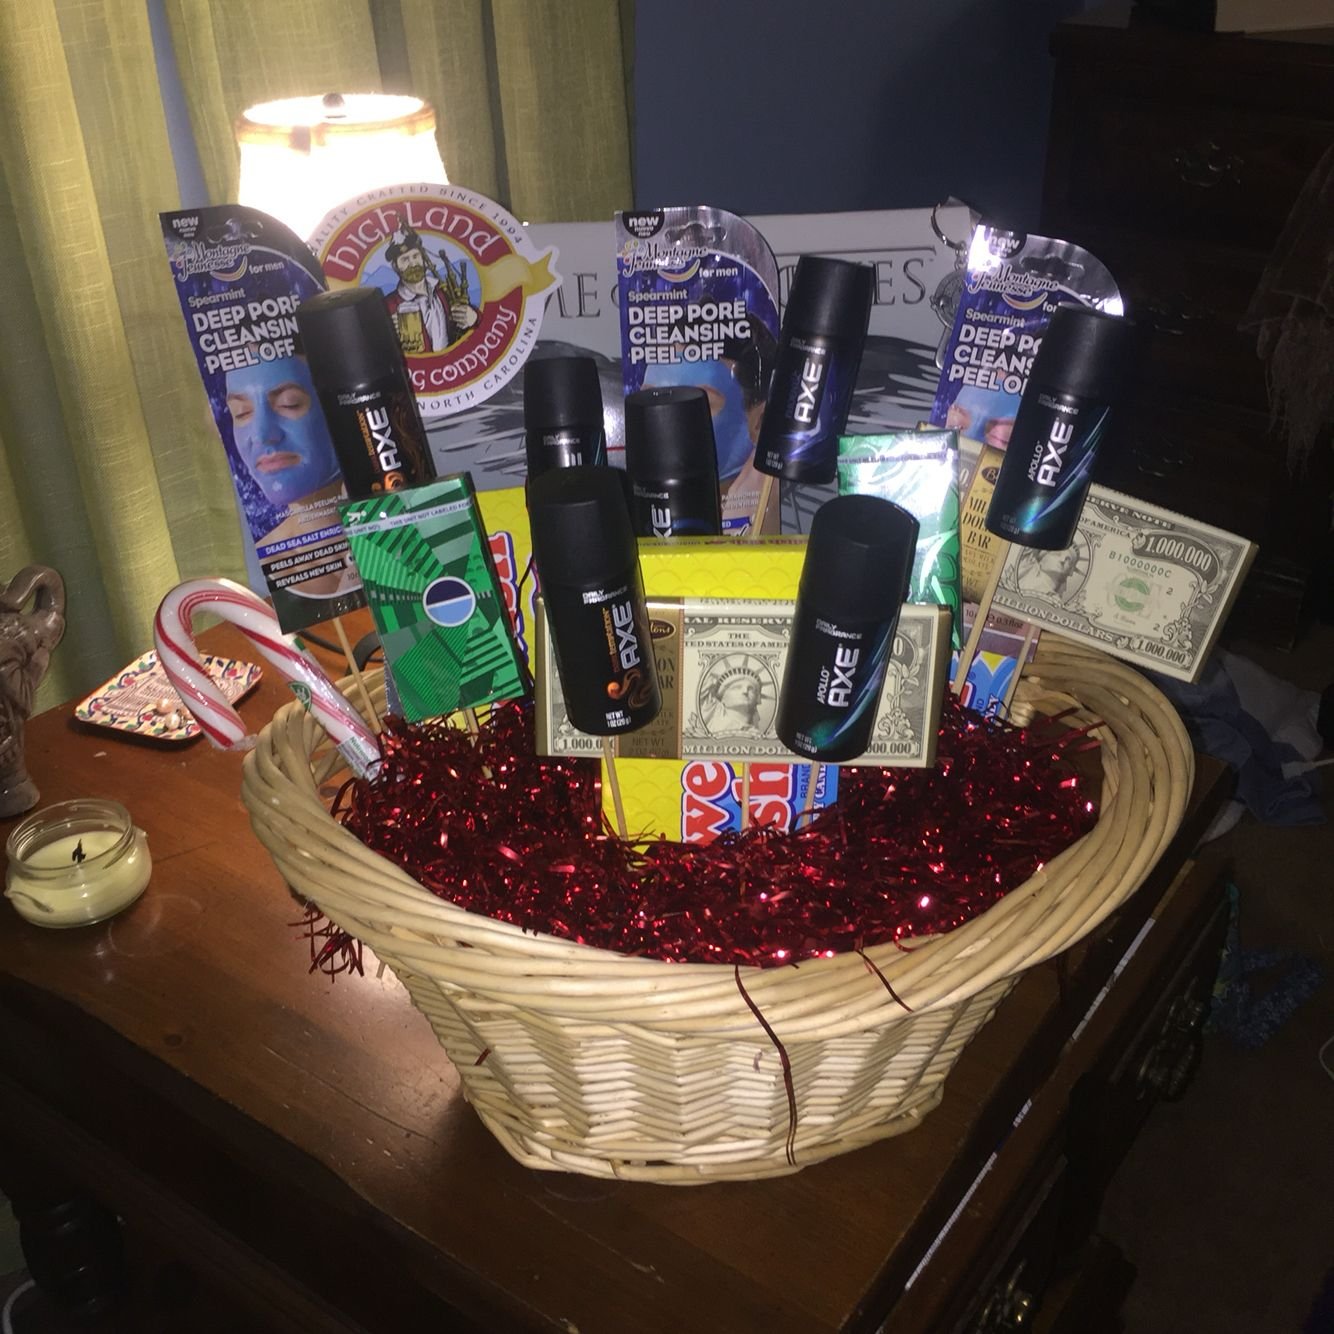 Man bouquet man basket gift for him easy dyi great birthday man bouquet man basket gift for him easy dyi great birthday christmas or easter gift dyi crafts i have done pinterest man basket man bouquet and b negle Choice Image